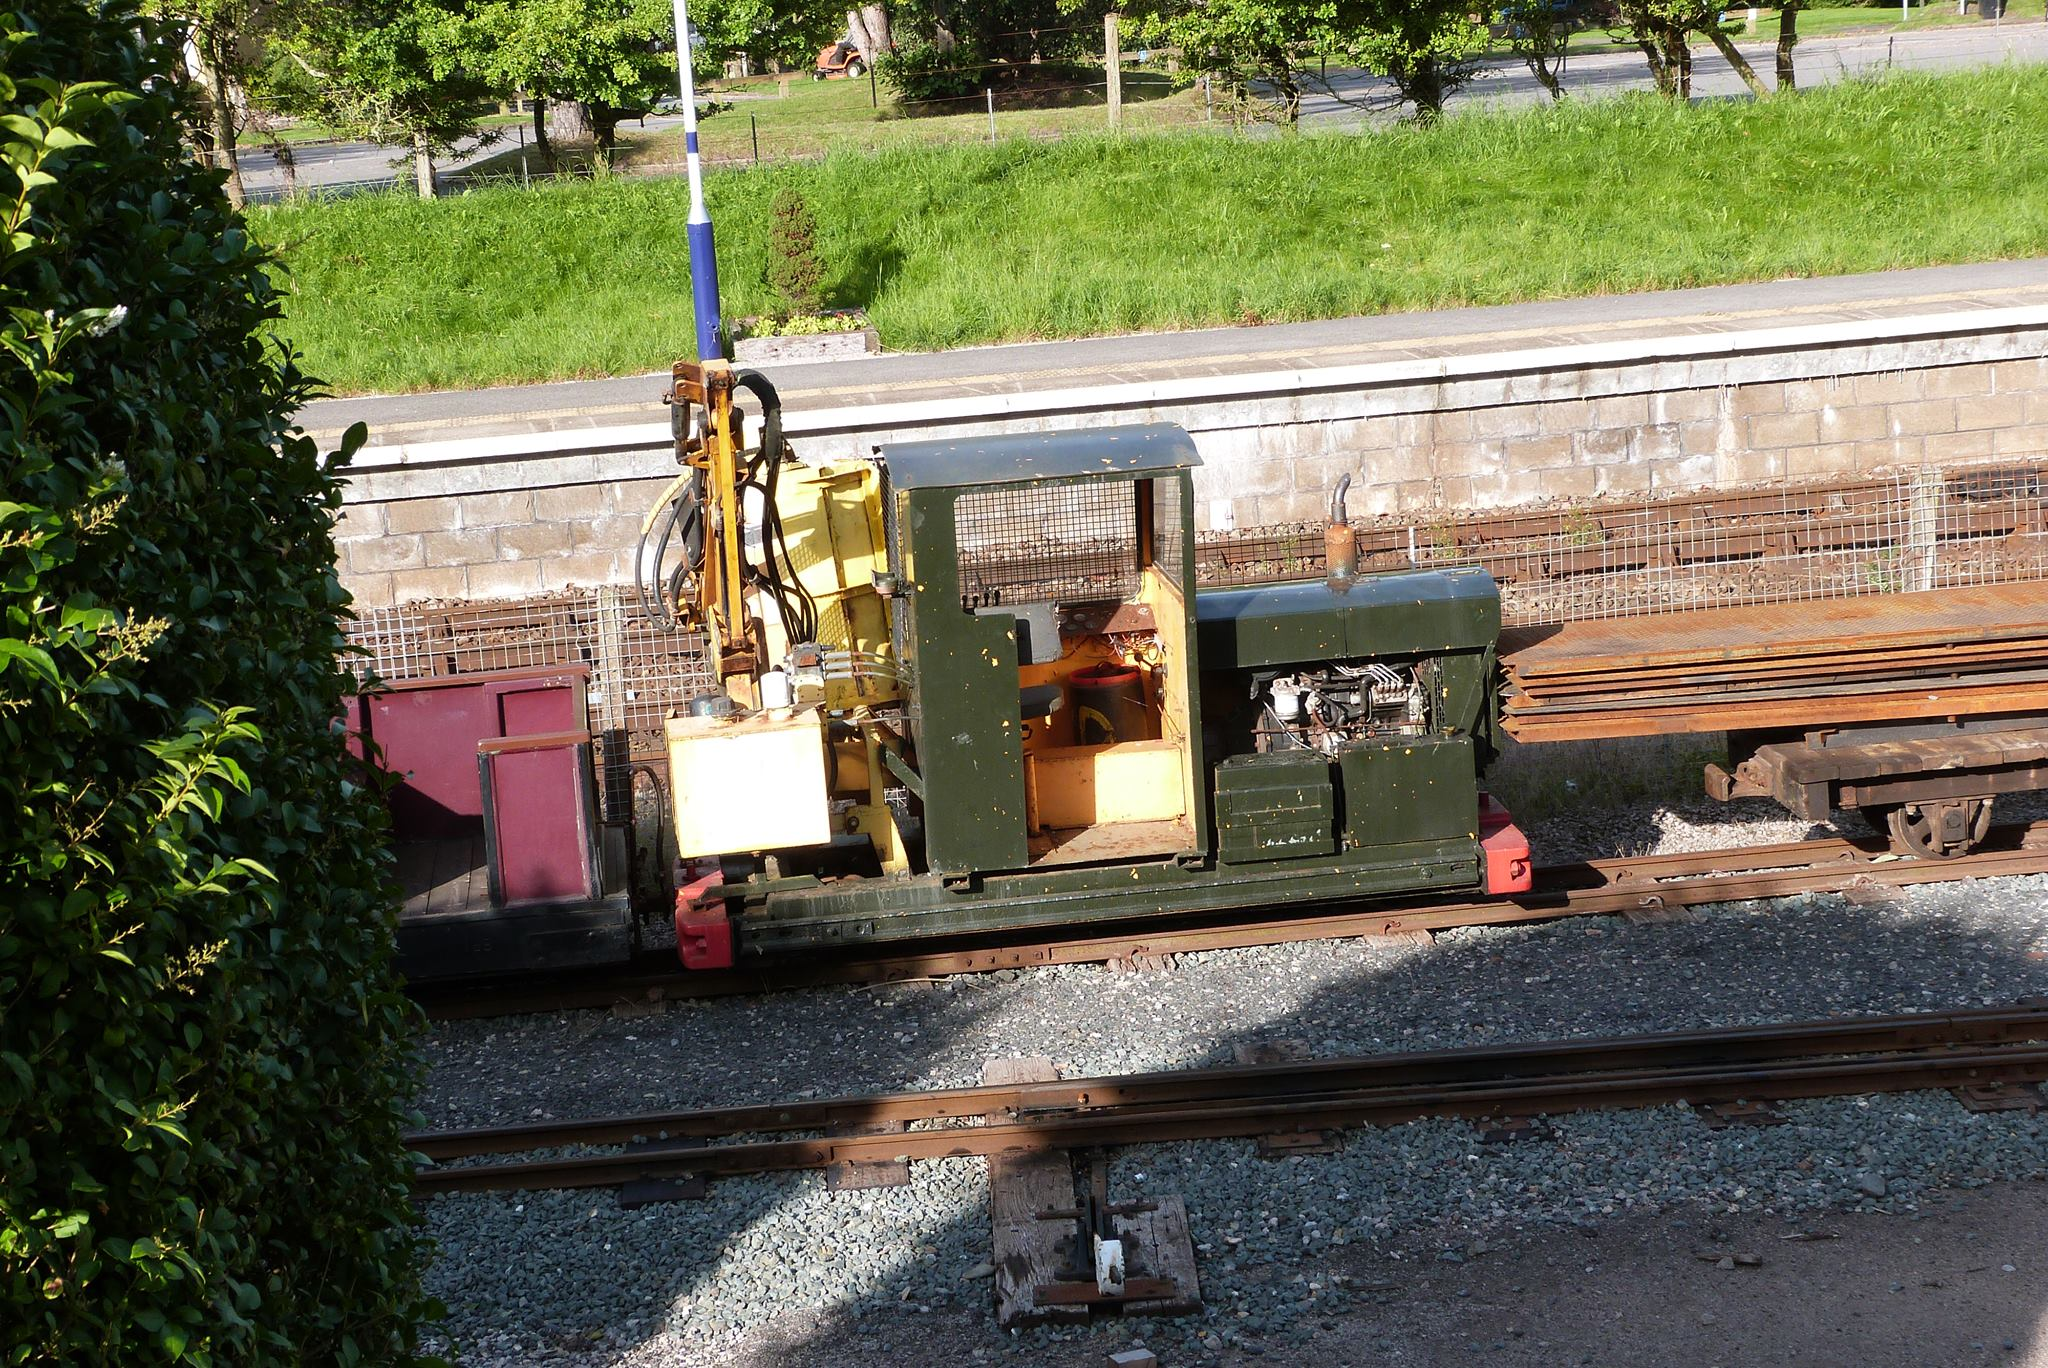 No. 277273 as a Flail Mower in August 2012